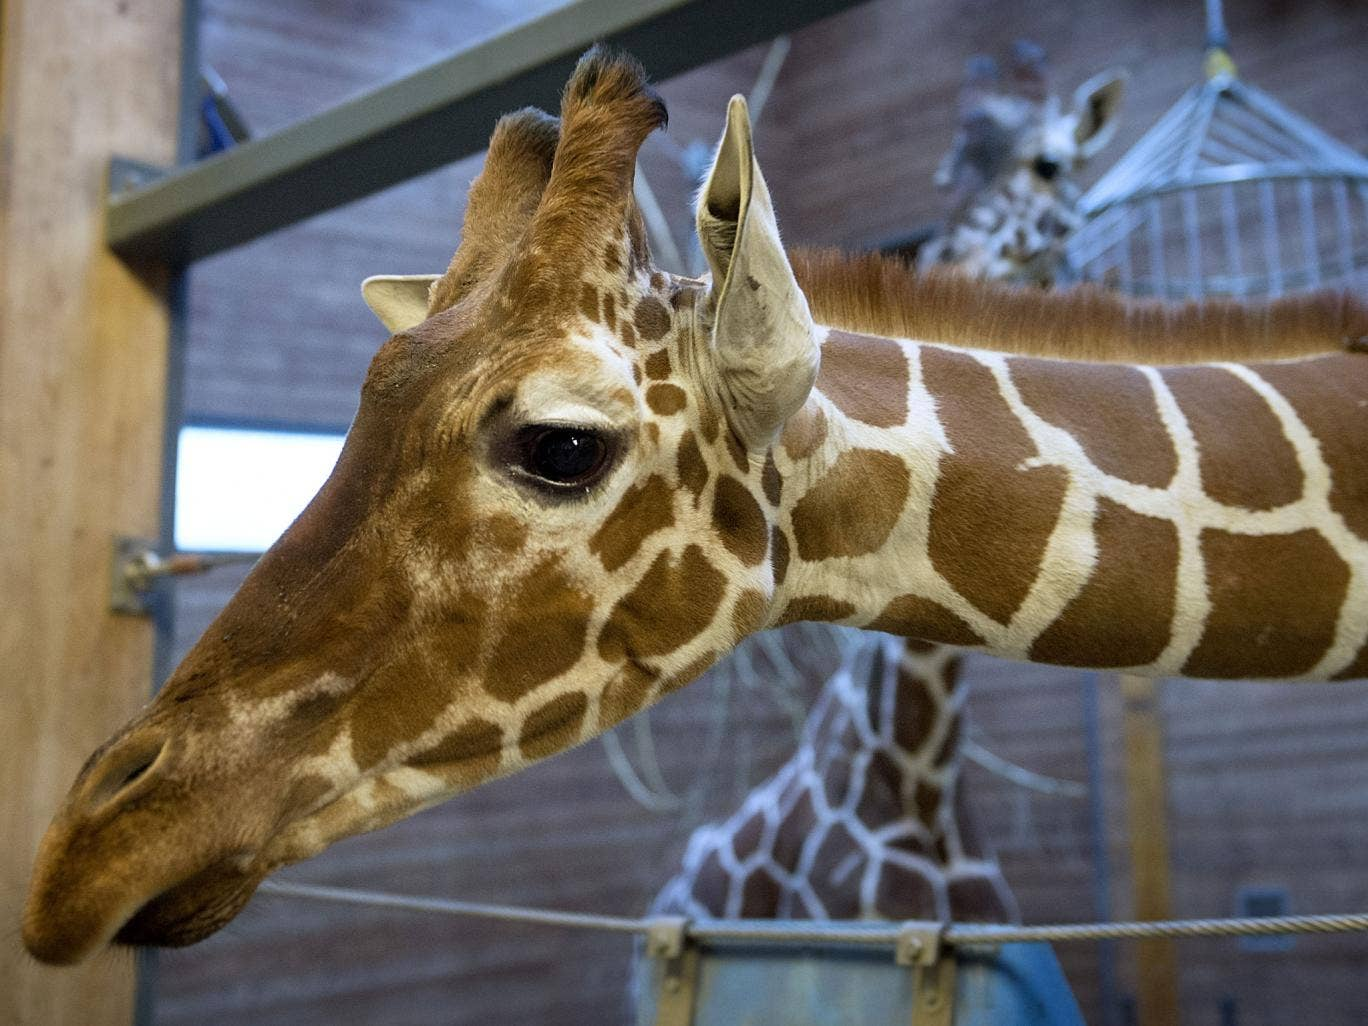 Picture taken on 7 Febuary, 2014, shows a healthy young giraffe named Marius who was shot dead and autopsied in the presence of visitors to the gardens at Copenhagen zoo on 9 Febuary, 2014 despite an online petition to save it signed by thousands of anima